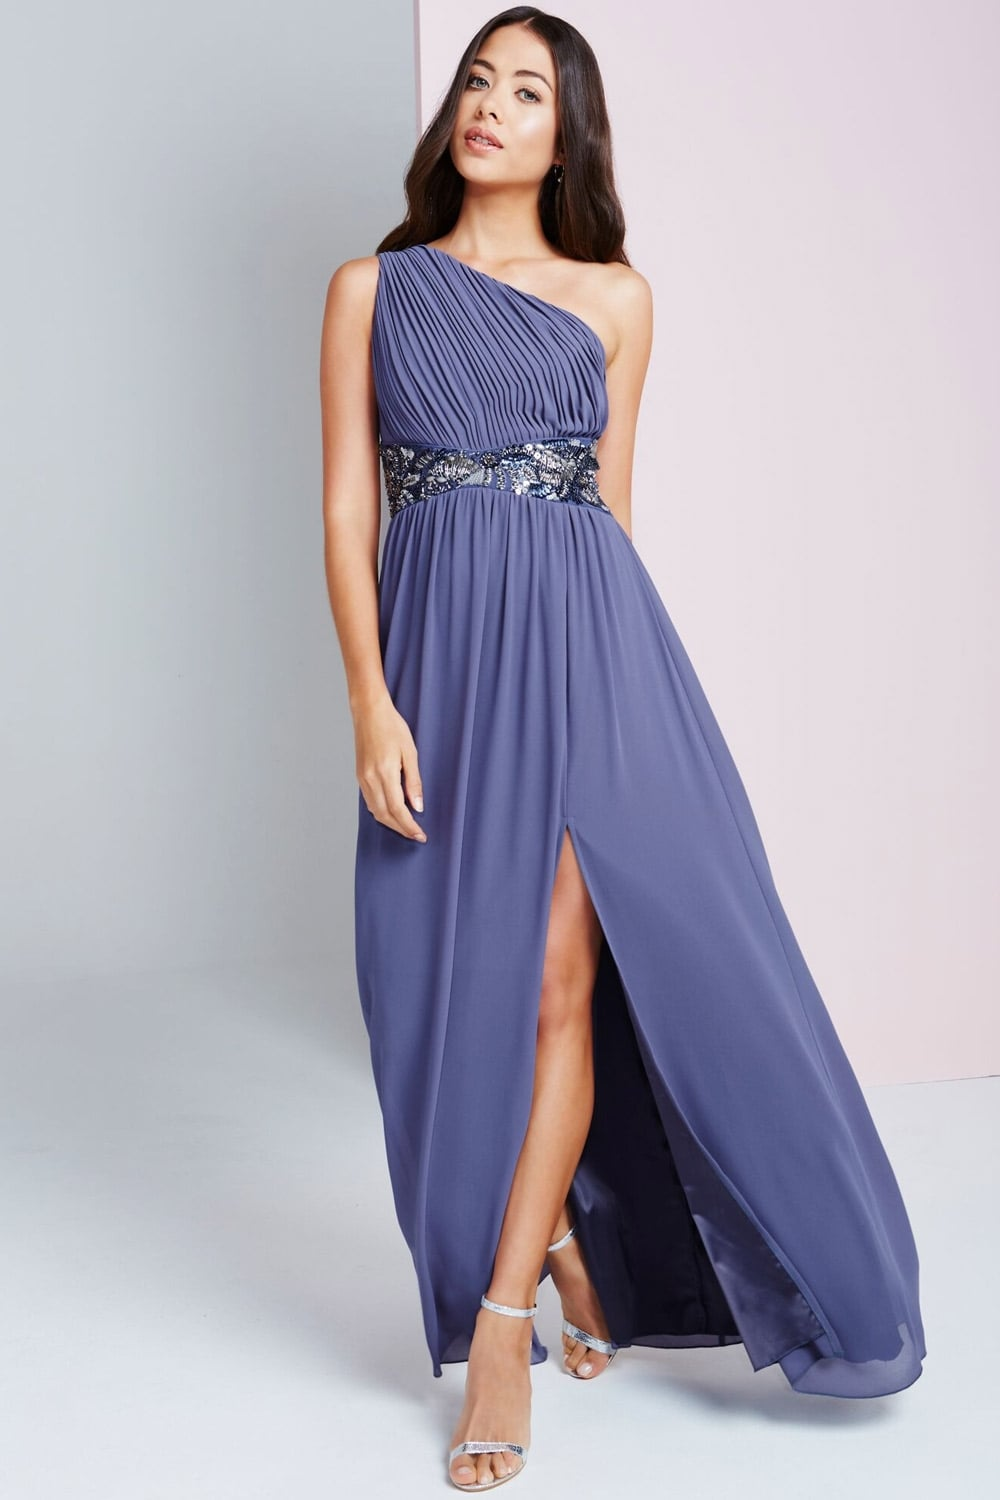 Lavender Grey One Shoulder Maxi Dress From Little